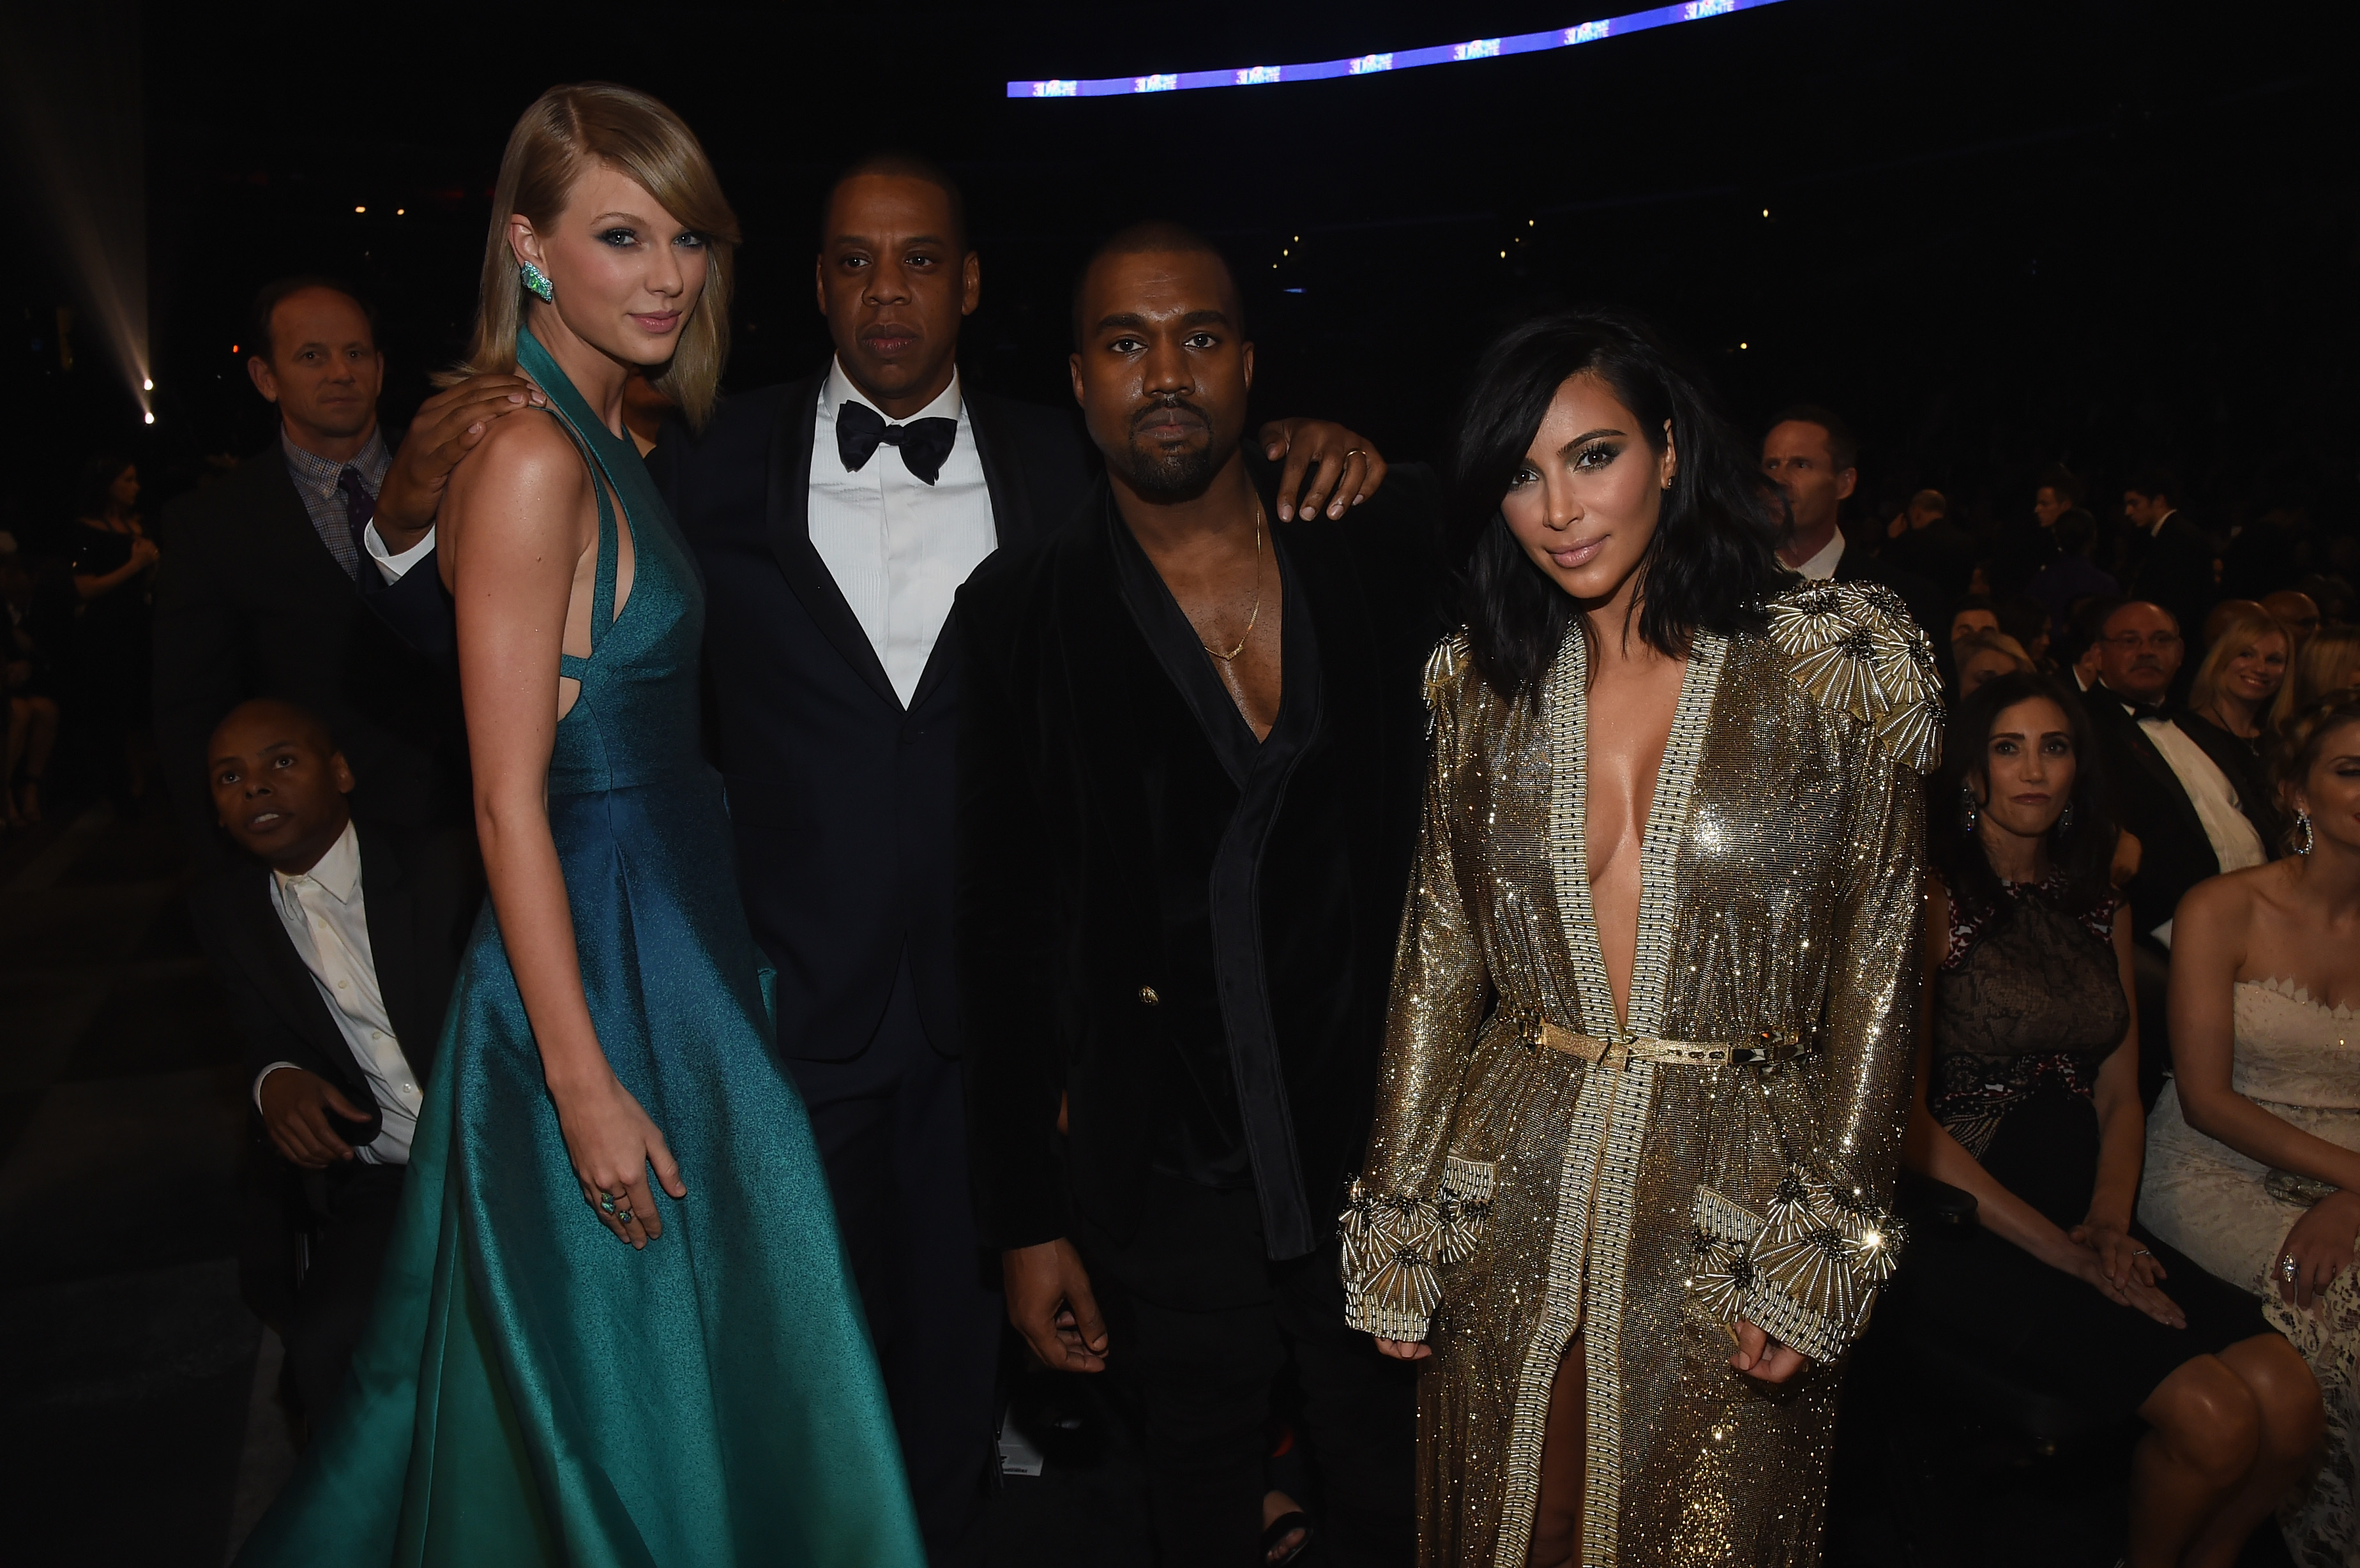 GettyImages 463036118 The Kanye West Taylor Swift Feud Has Just Got A Whole Lot Worse